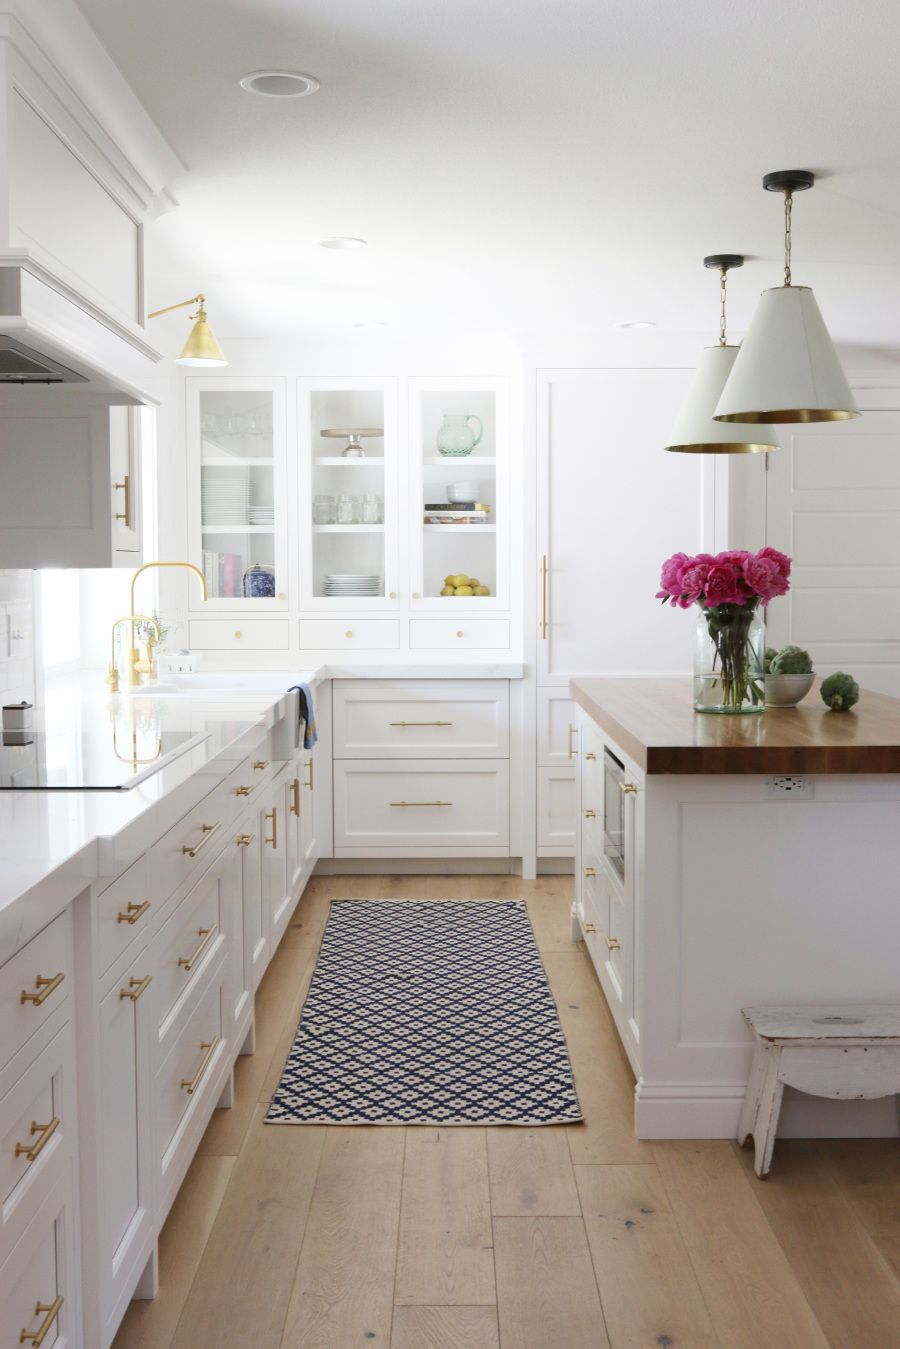 A Classic White Kitchen Remodel With Wood Countertop Island And Brass  Hardware Photography : Studio McGee